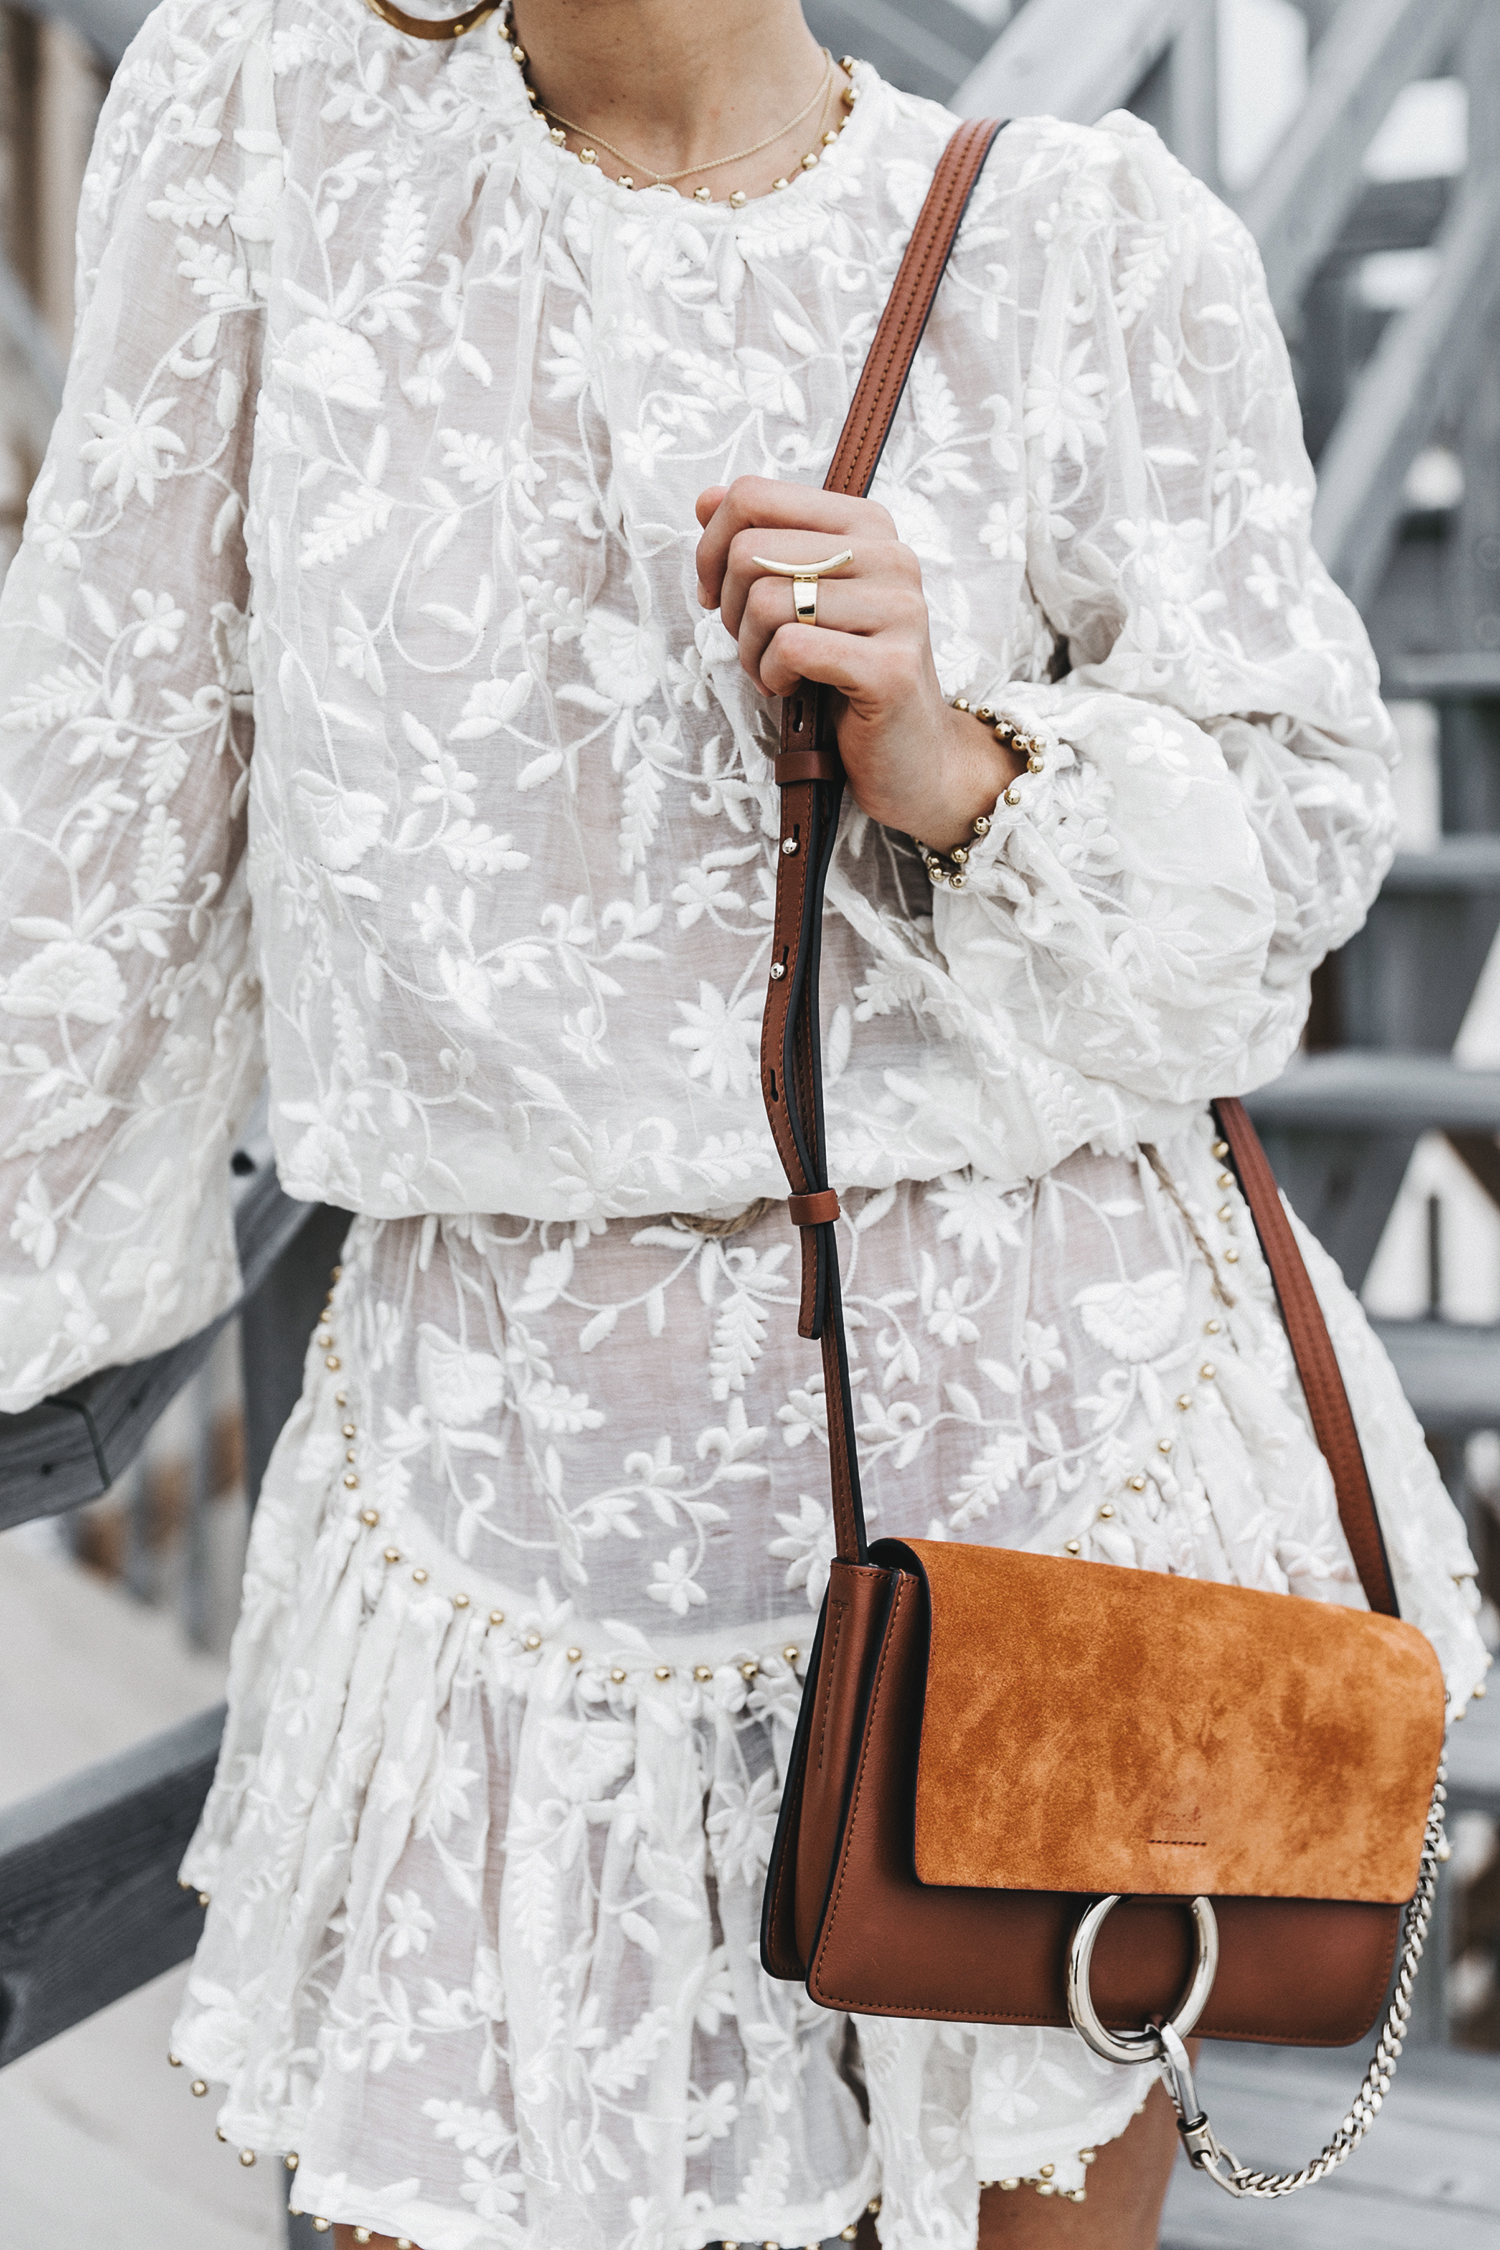 Revolve_in_The_Hamptons-Zimmermann-Embroidered_Dress-WHite_Dress-Chloe_Fay_Bag-Chloe_Wedges-Outfit-93